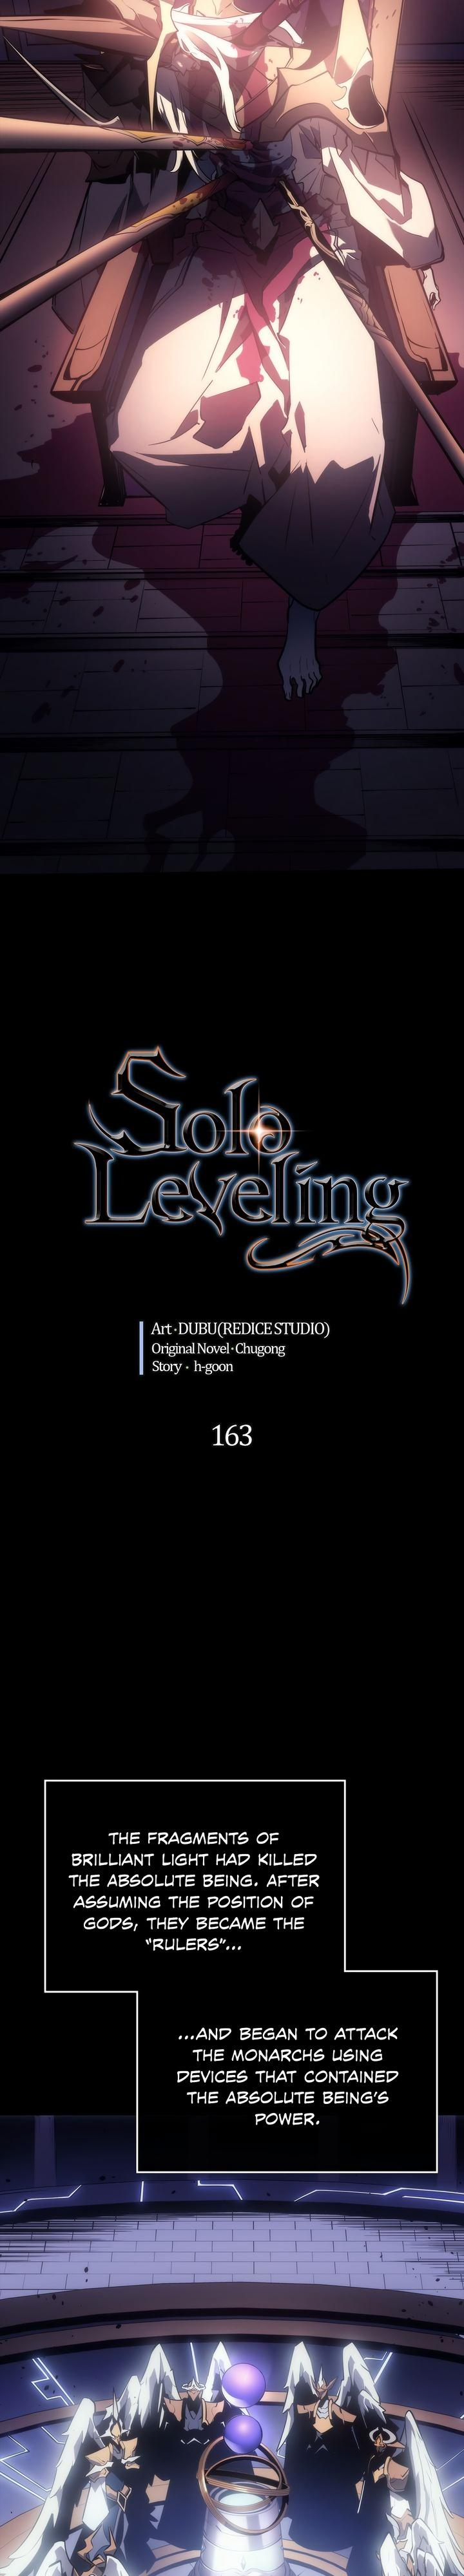 Solo Leveling Chapter 163 Page 2